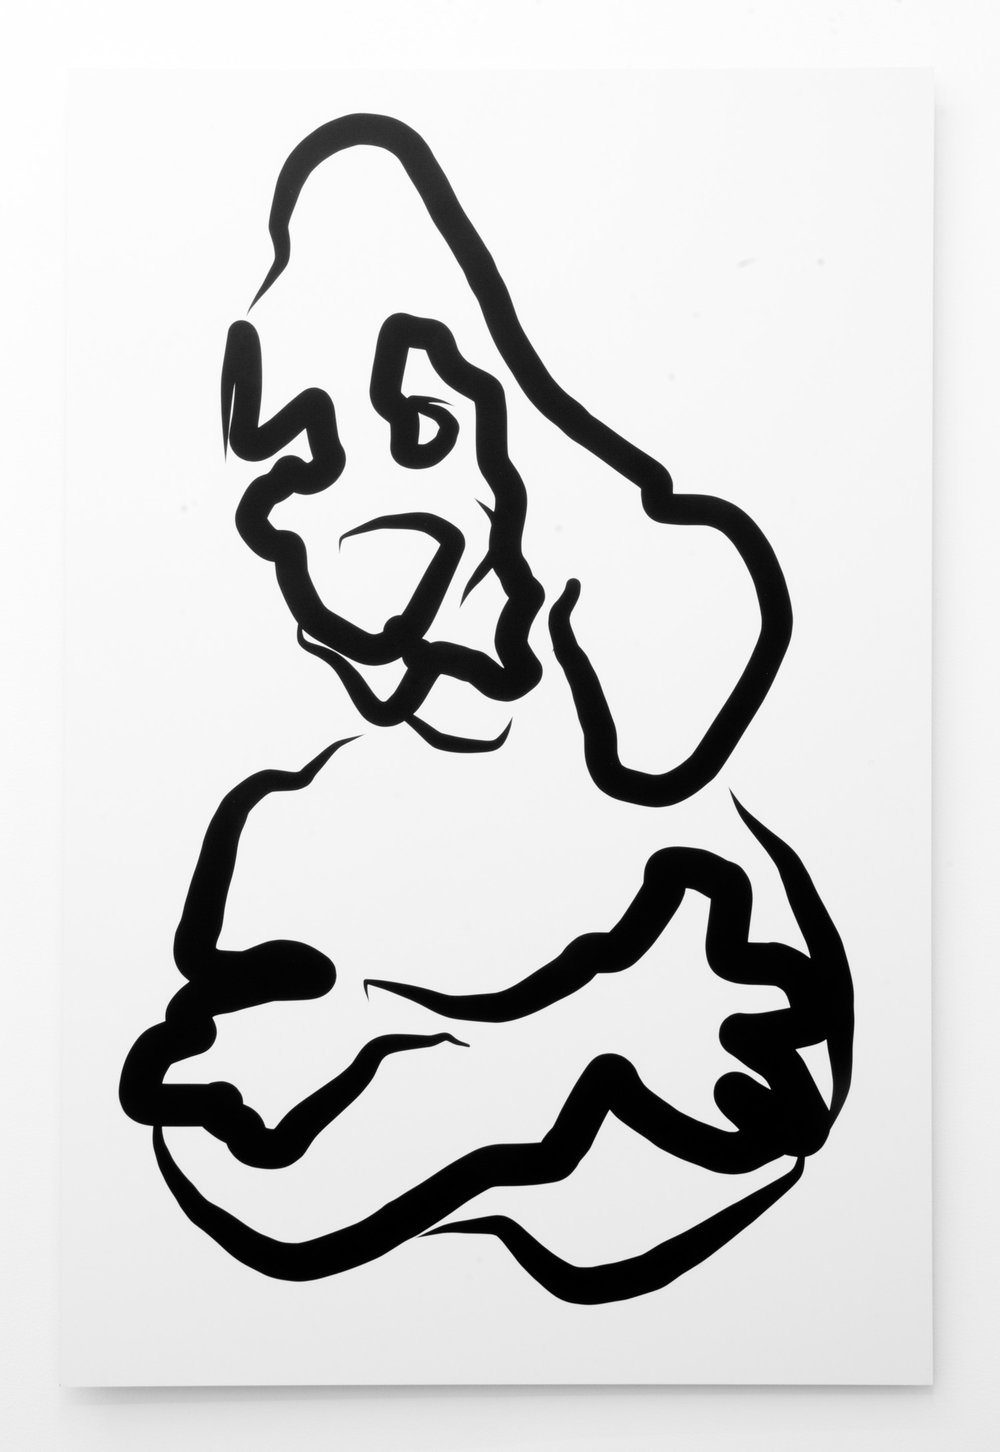 Jon Knight, Untitled, 2012, inkjet on di-bond, 100 x 66 cm.